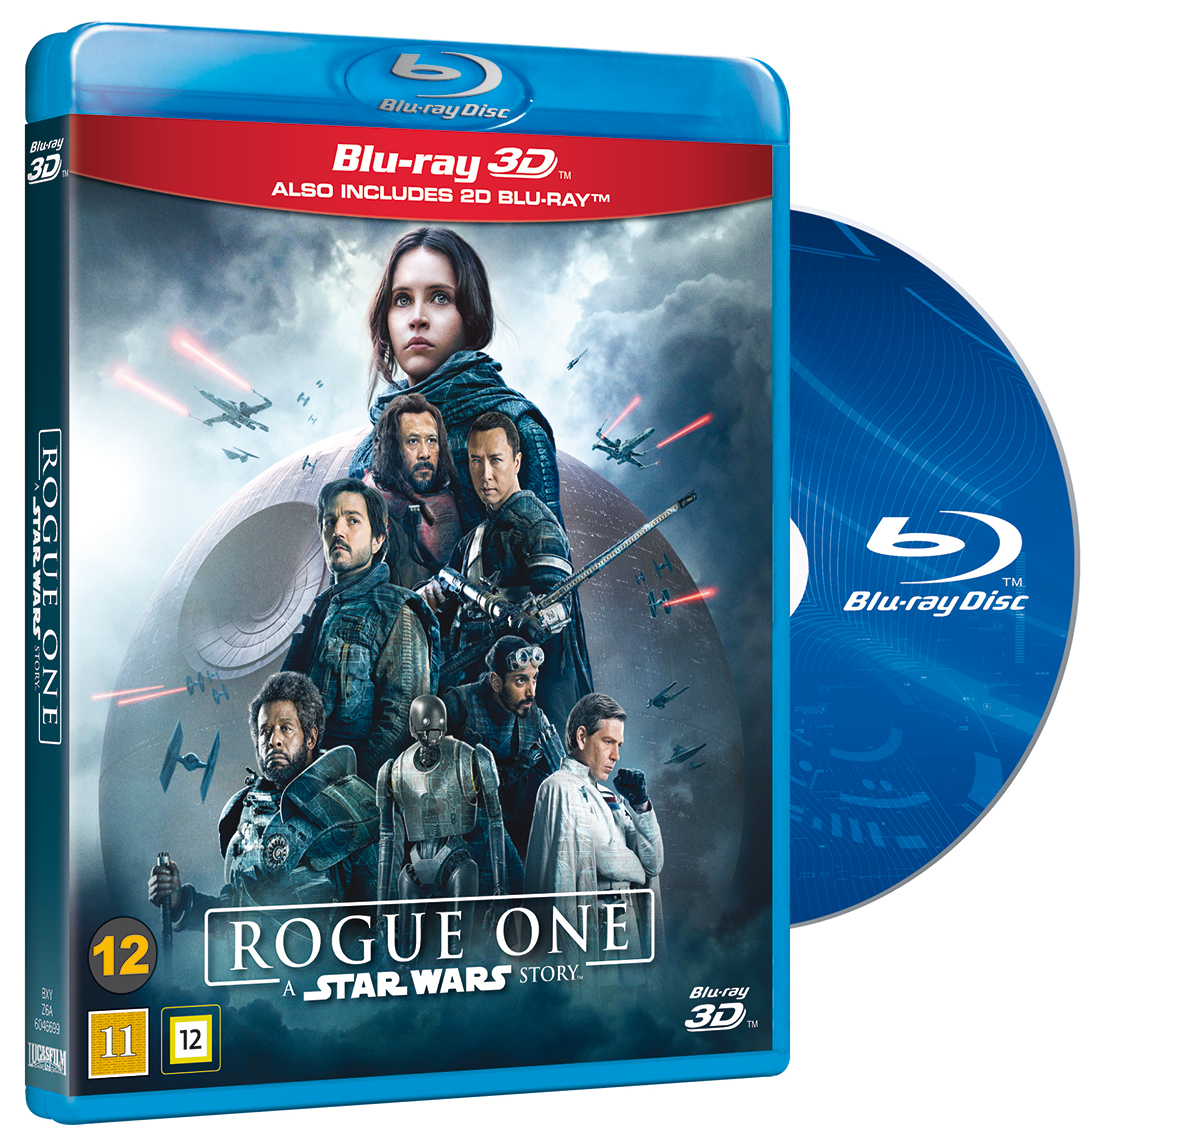 BLU-RAY 3D: Rogue One: A Star Wars Story.